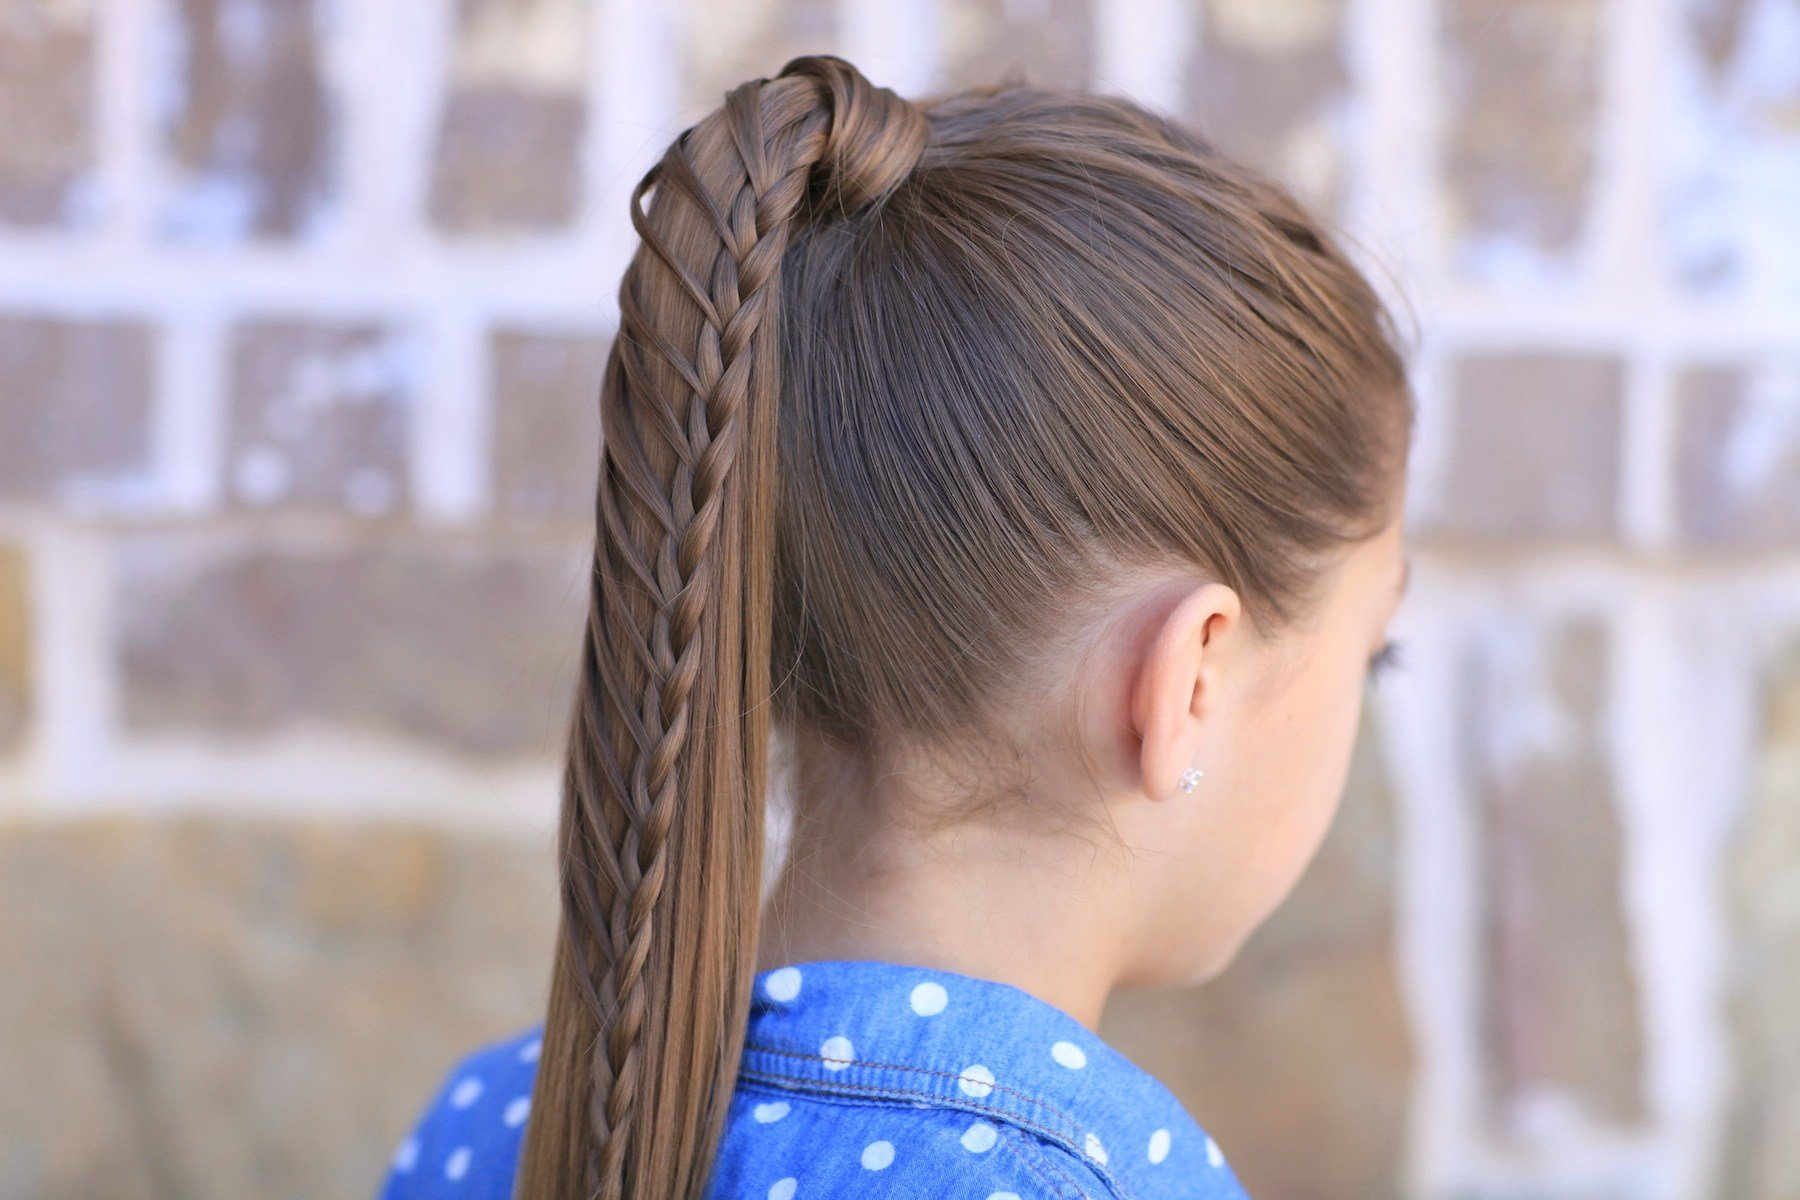 New Lace Braided Ponytail And Updo Cute Hairstyles Cute Ideas With Pictures